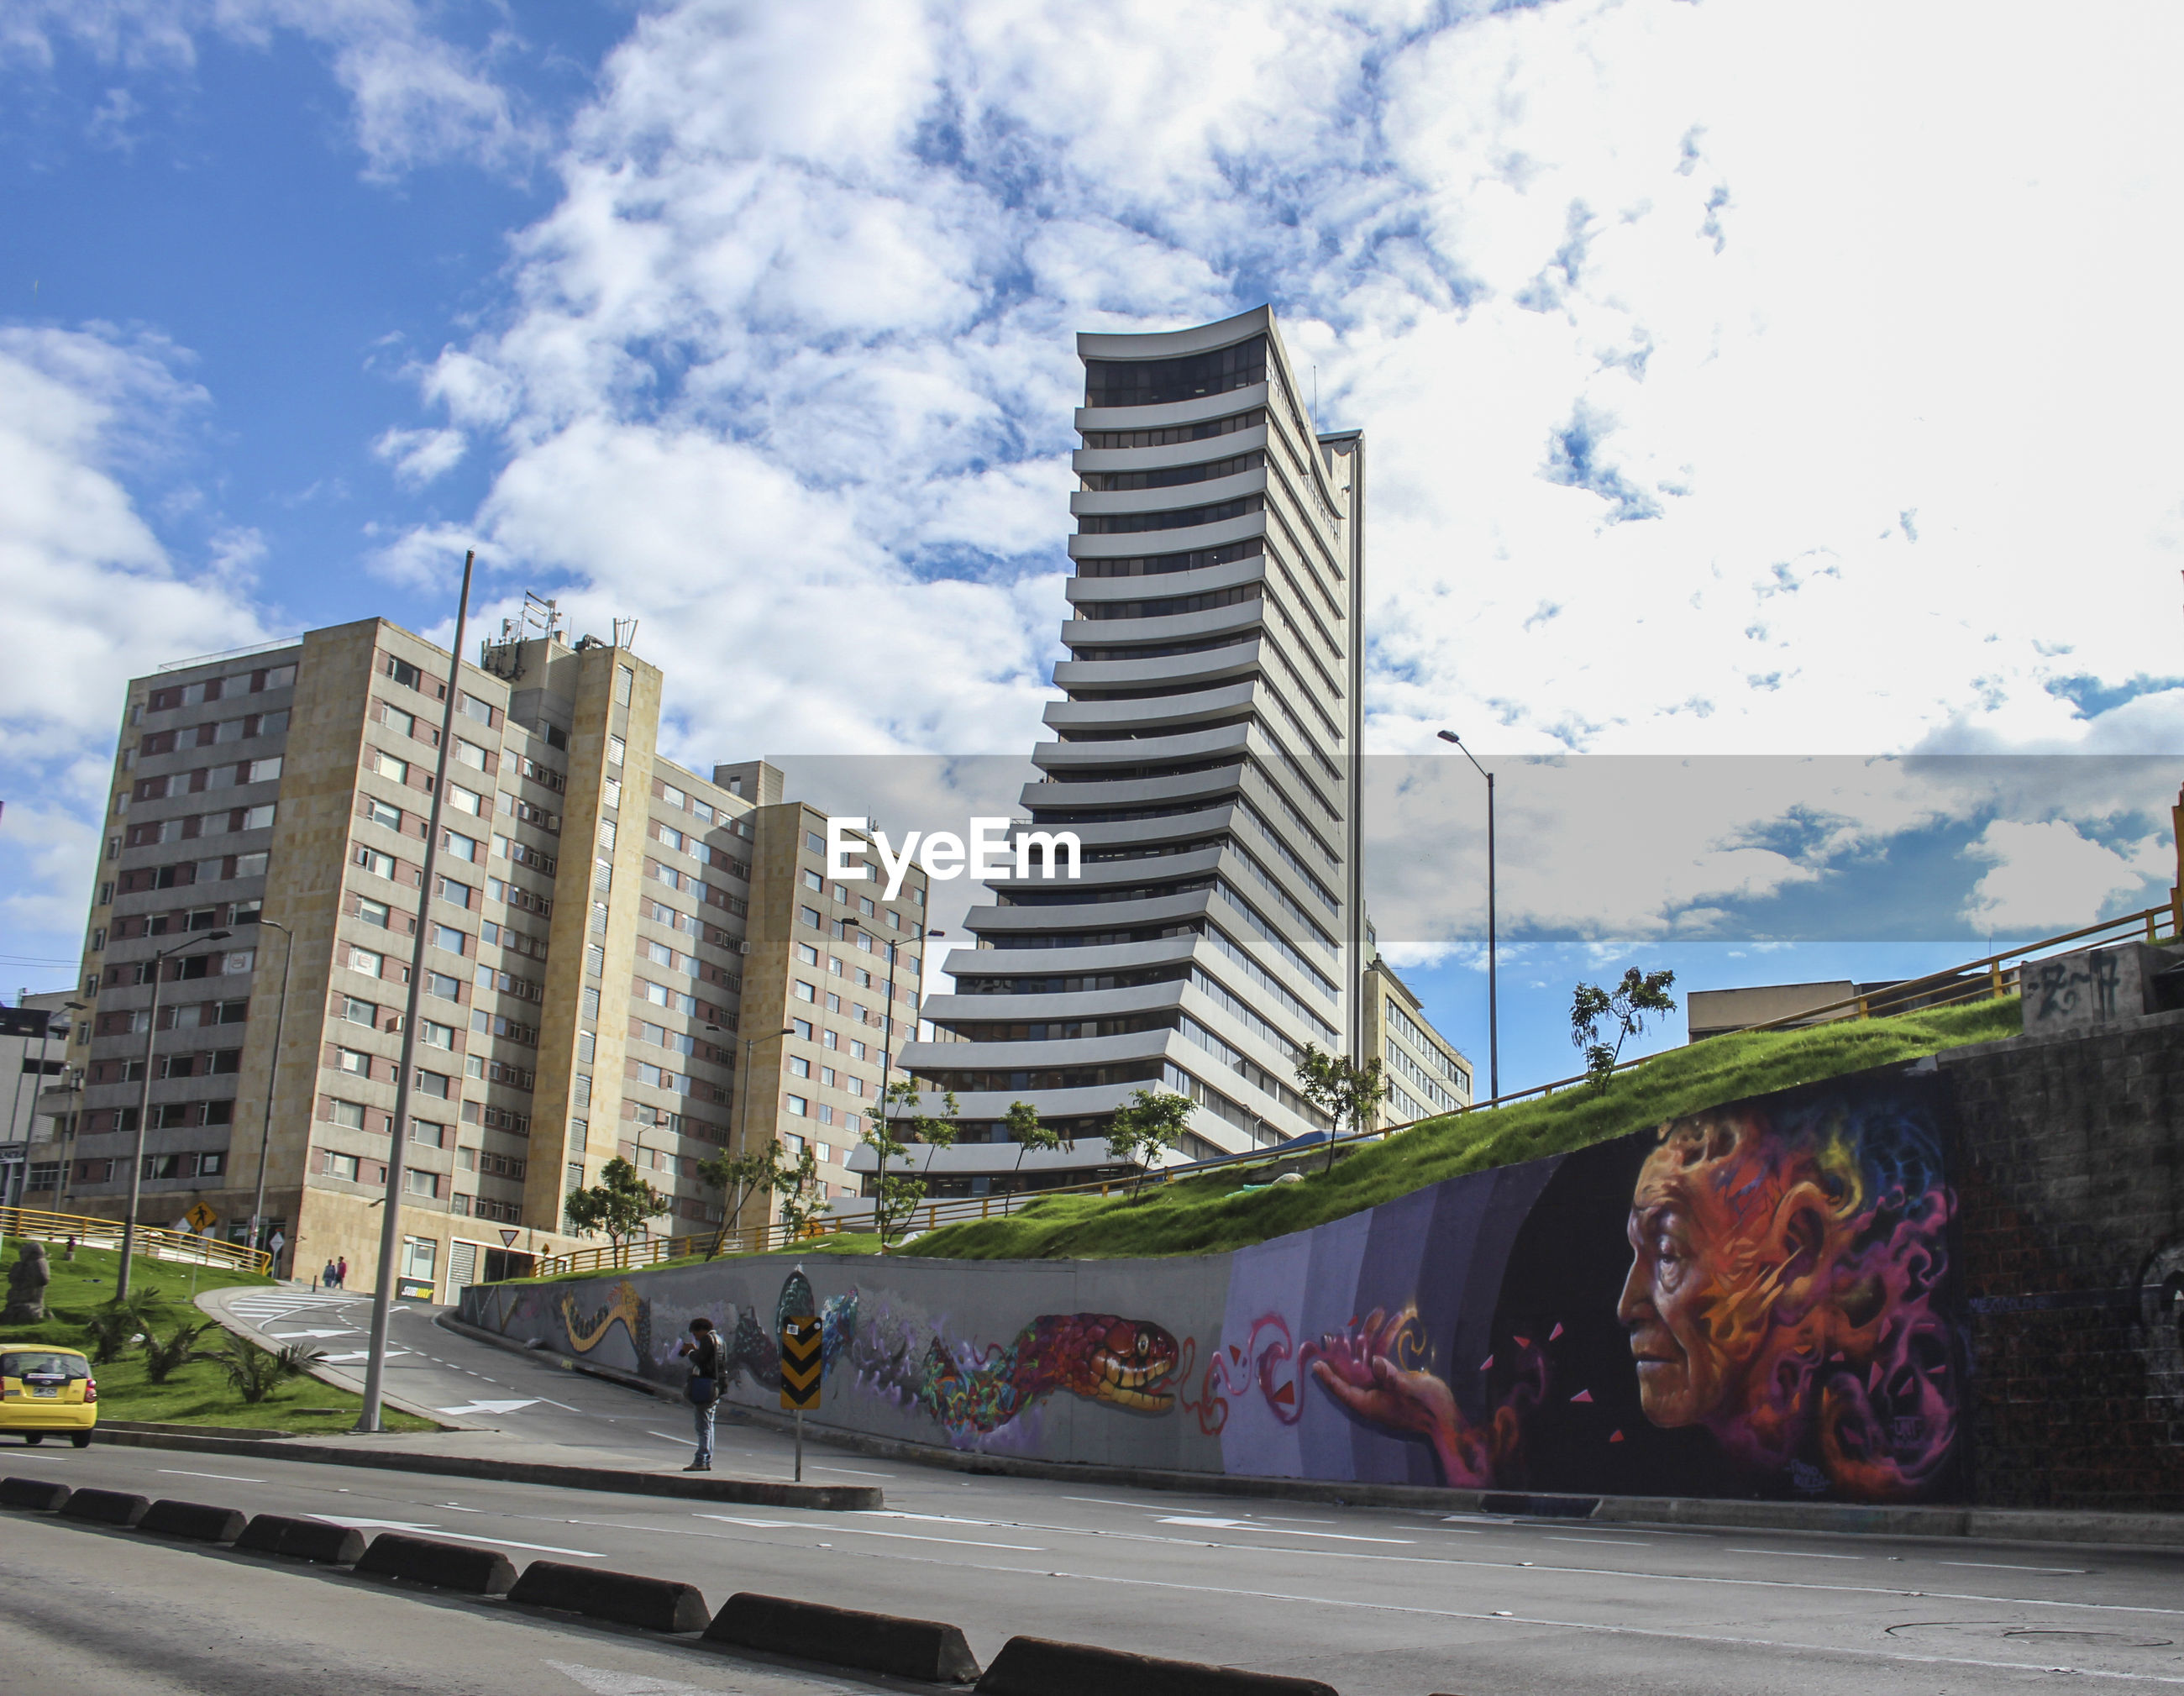 building exterior, architecture, built structure, sky, city, low angle view, building, cloud - sky, cloud, day, modern, outdoors, art, art and craft, office building, no people, skyscraper, city life, street, cloudy